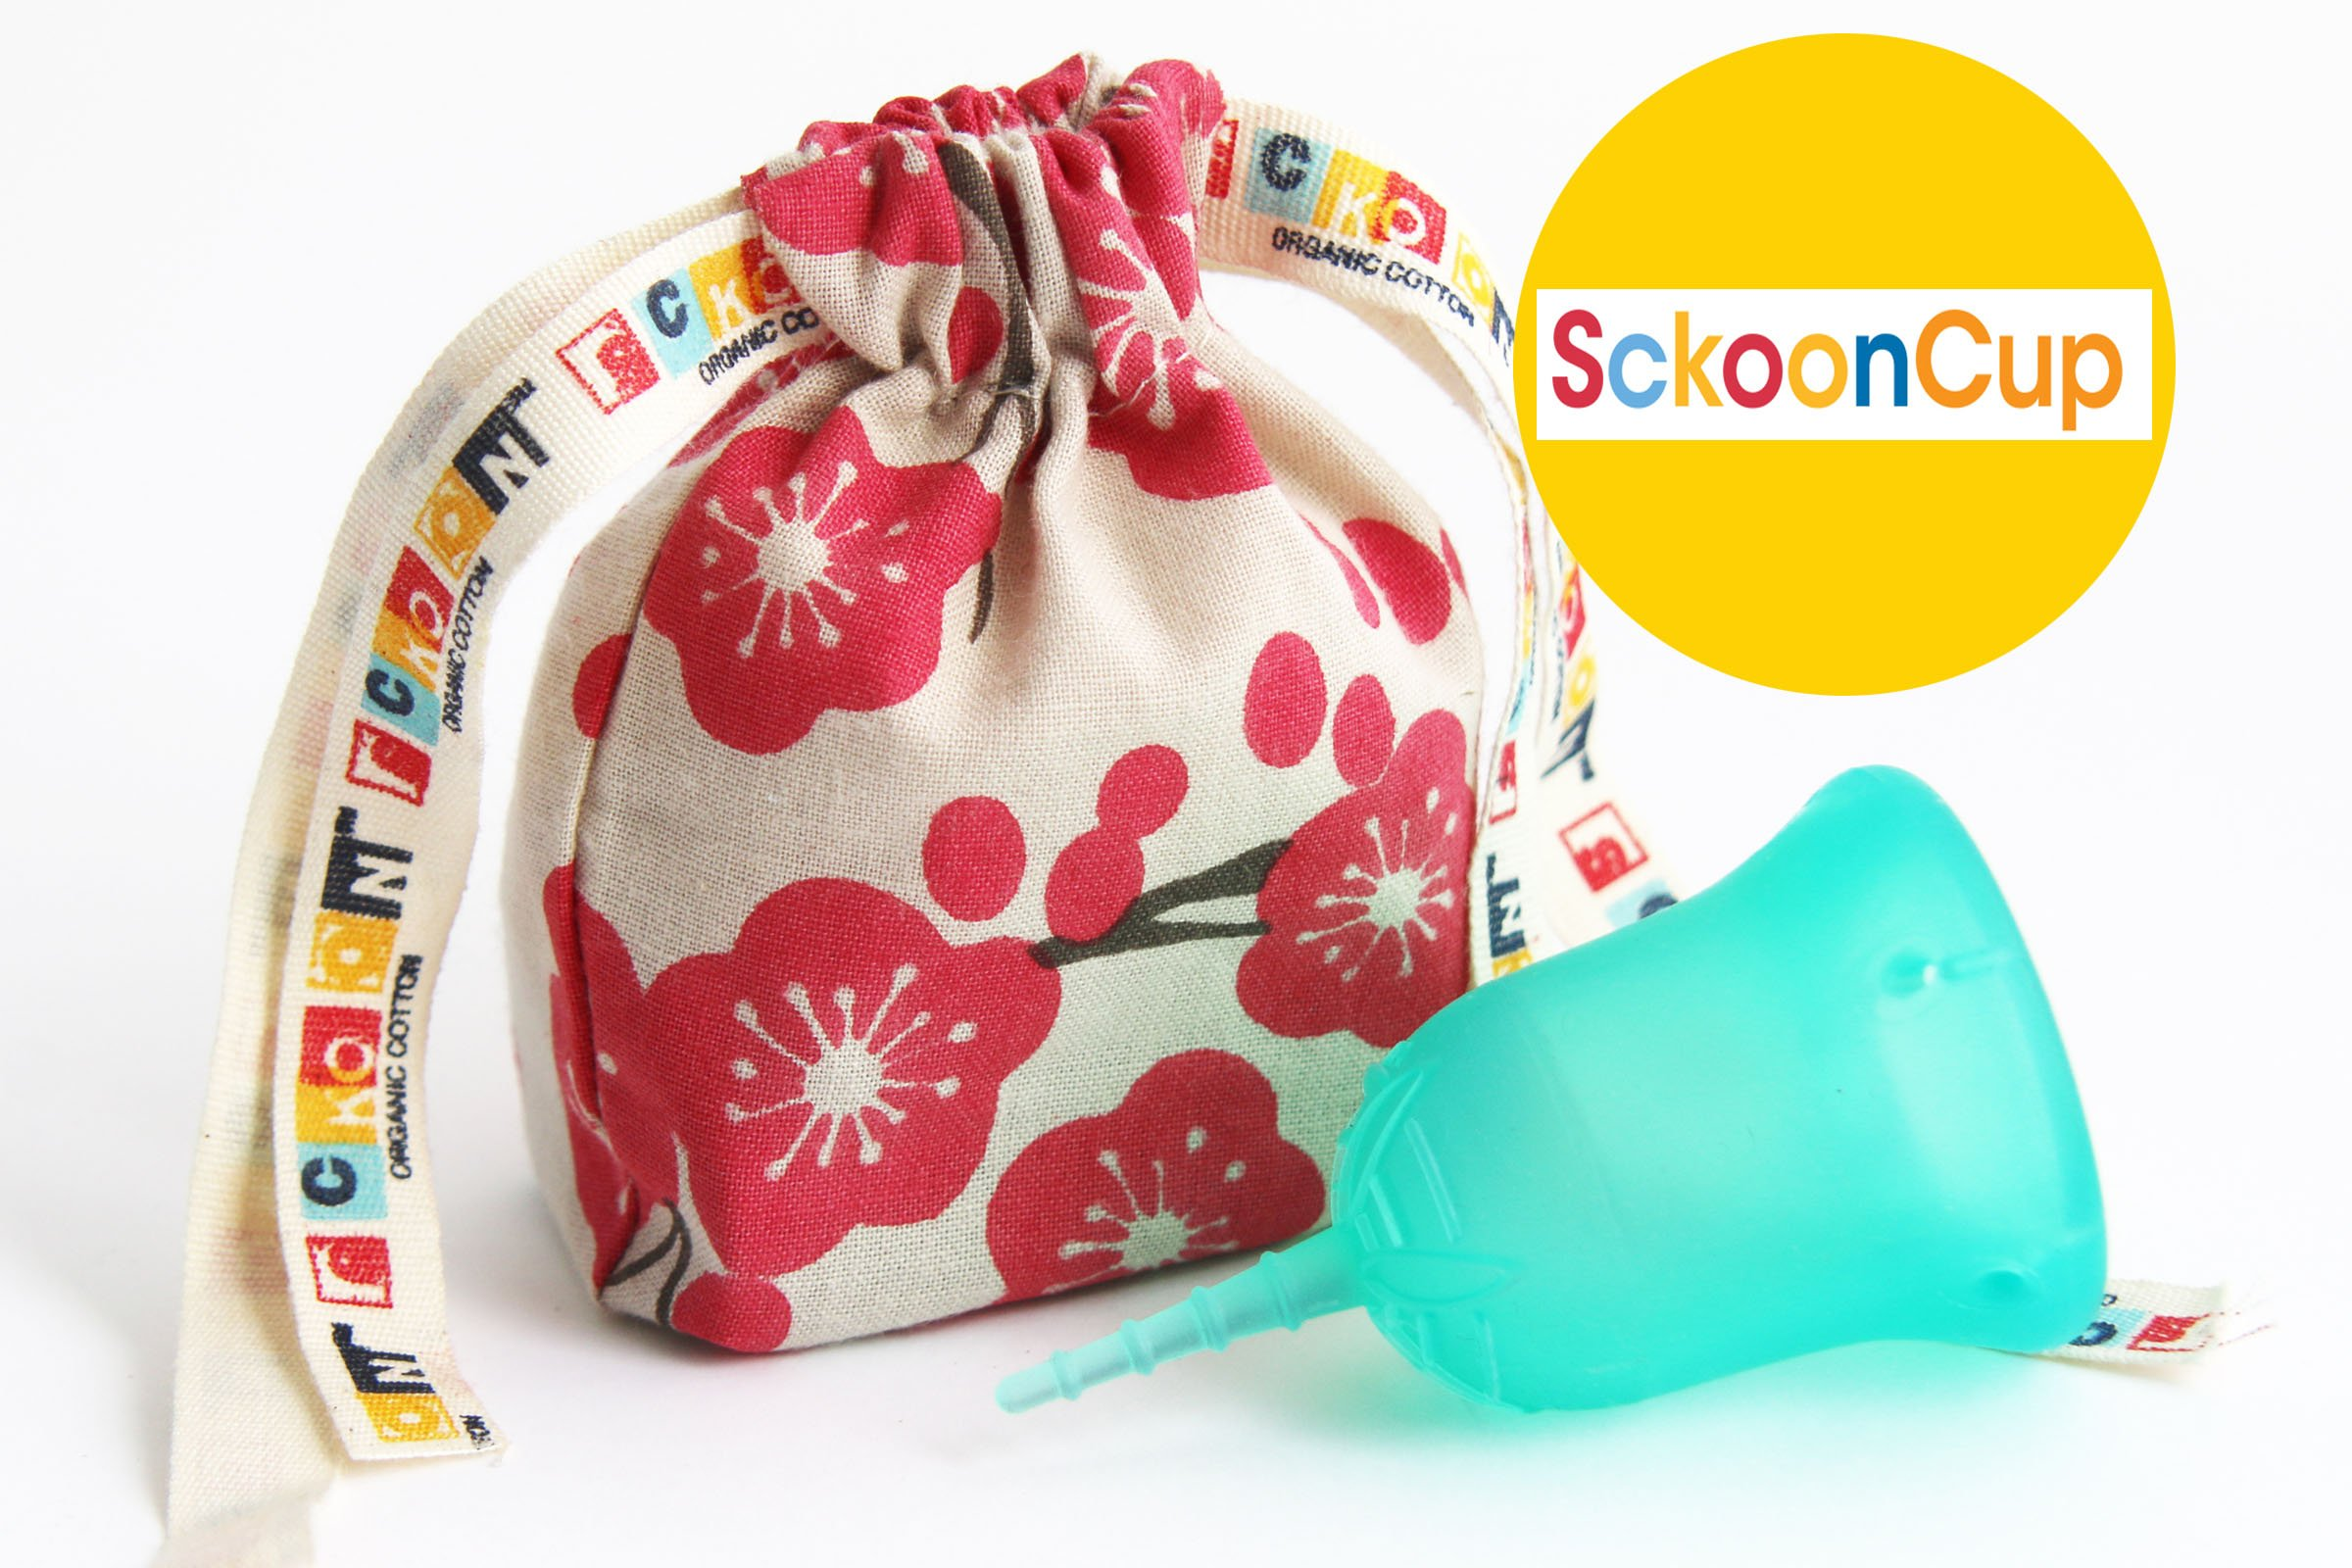 SckoonCup Made in USA FDA Registered Organic Cotton Pouch - Sckoon Menstrual Cup (Size 1(Women have not given birth vaginally) Small, SckoonCup Aqua)